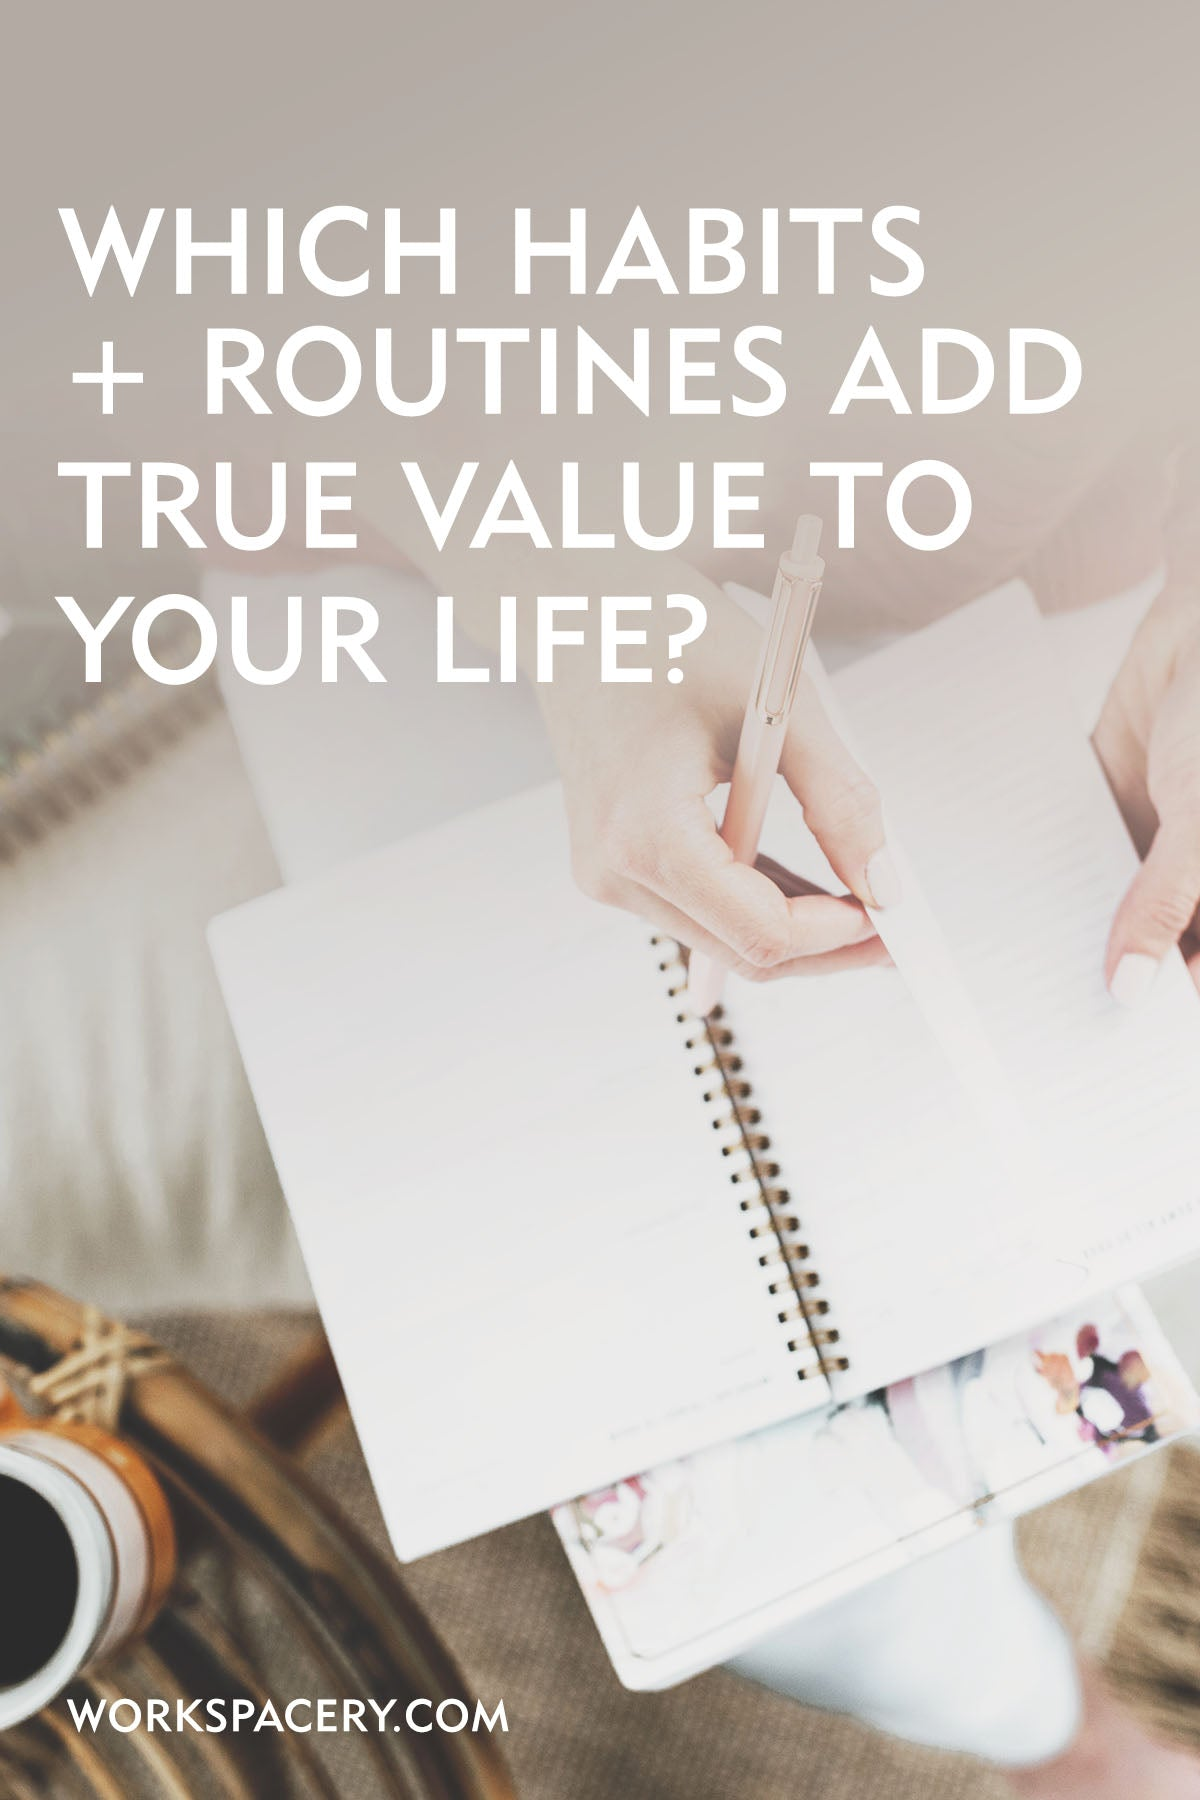 Which Habits and Routines Add True Value to Your Life?